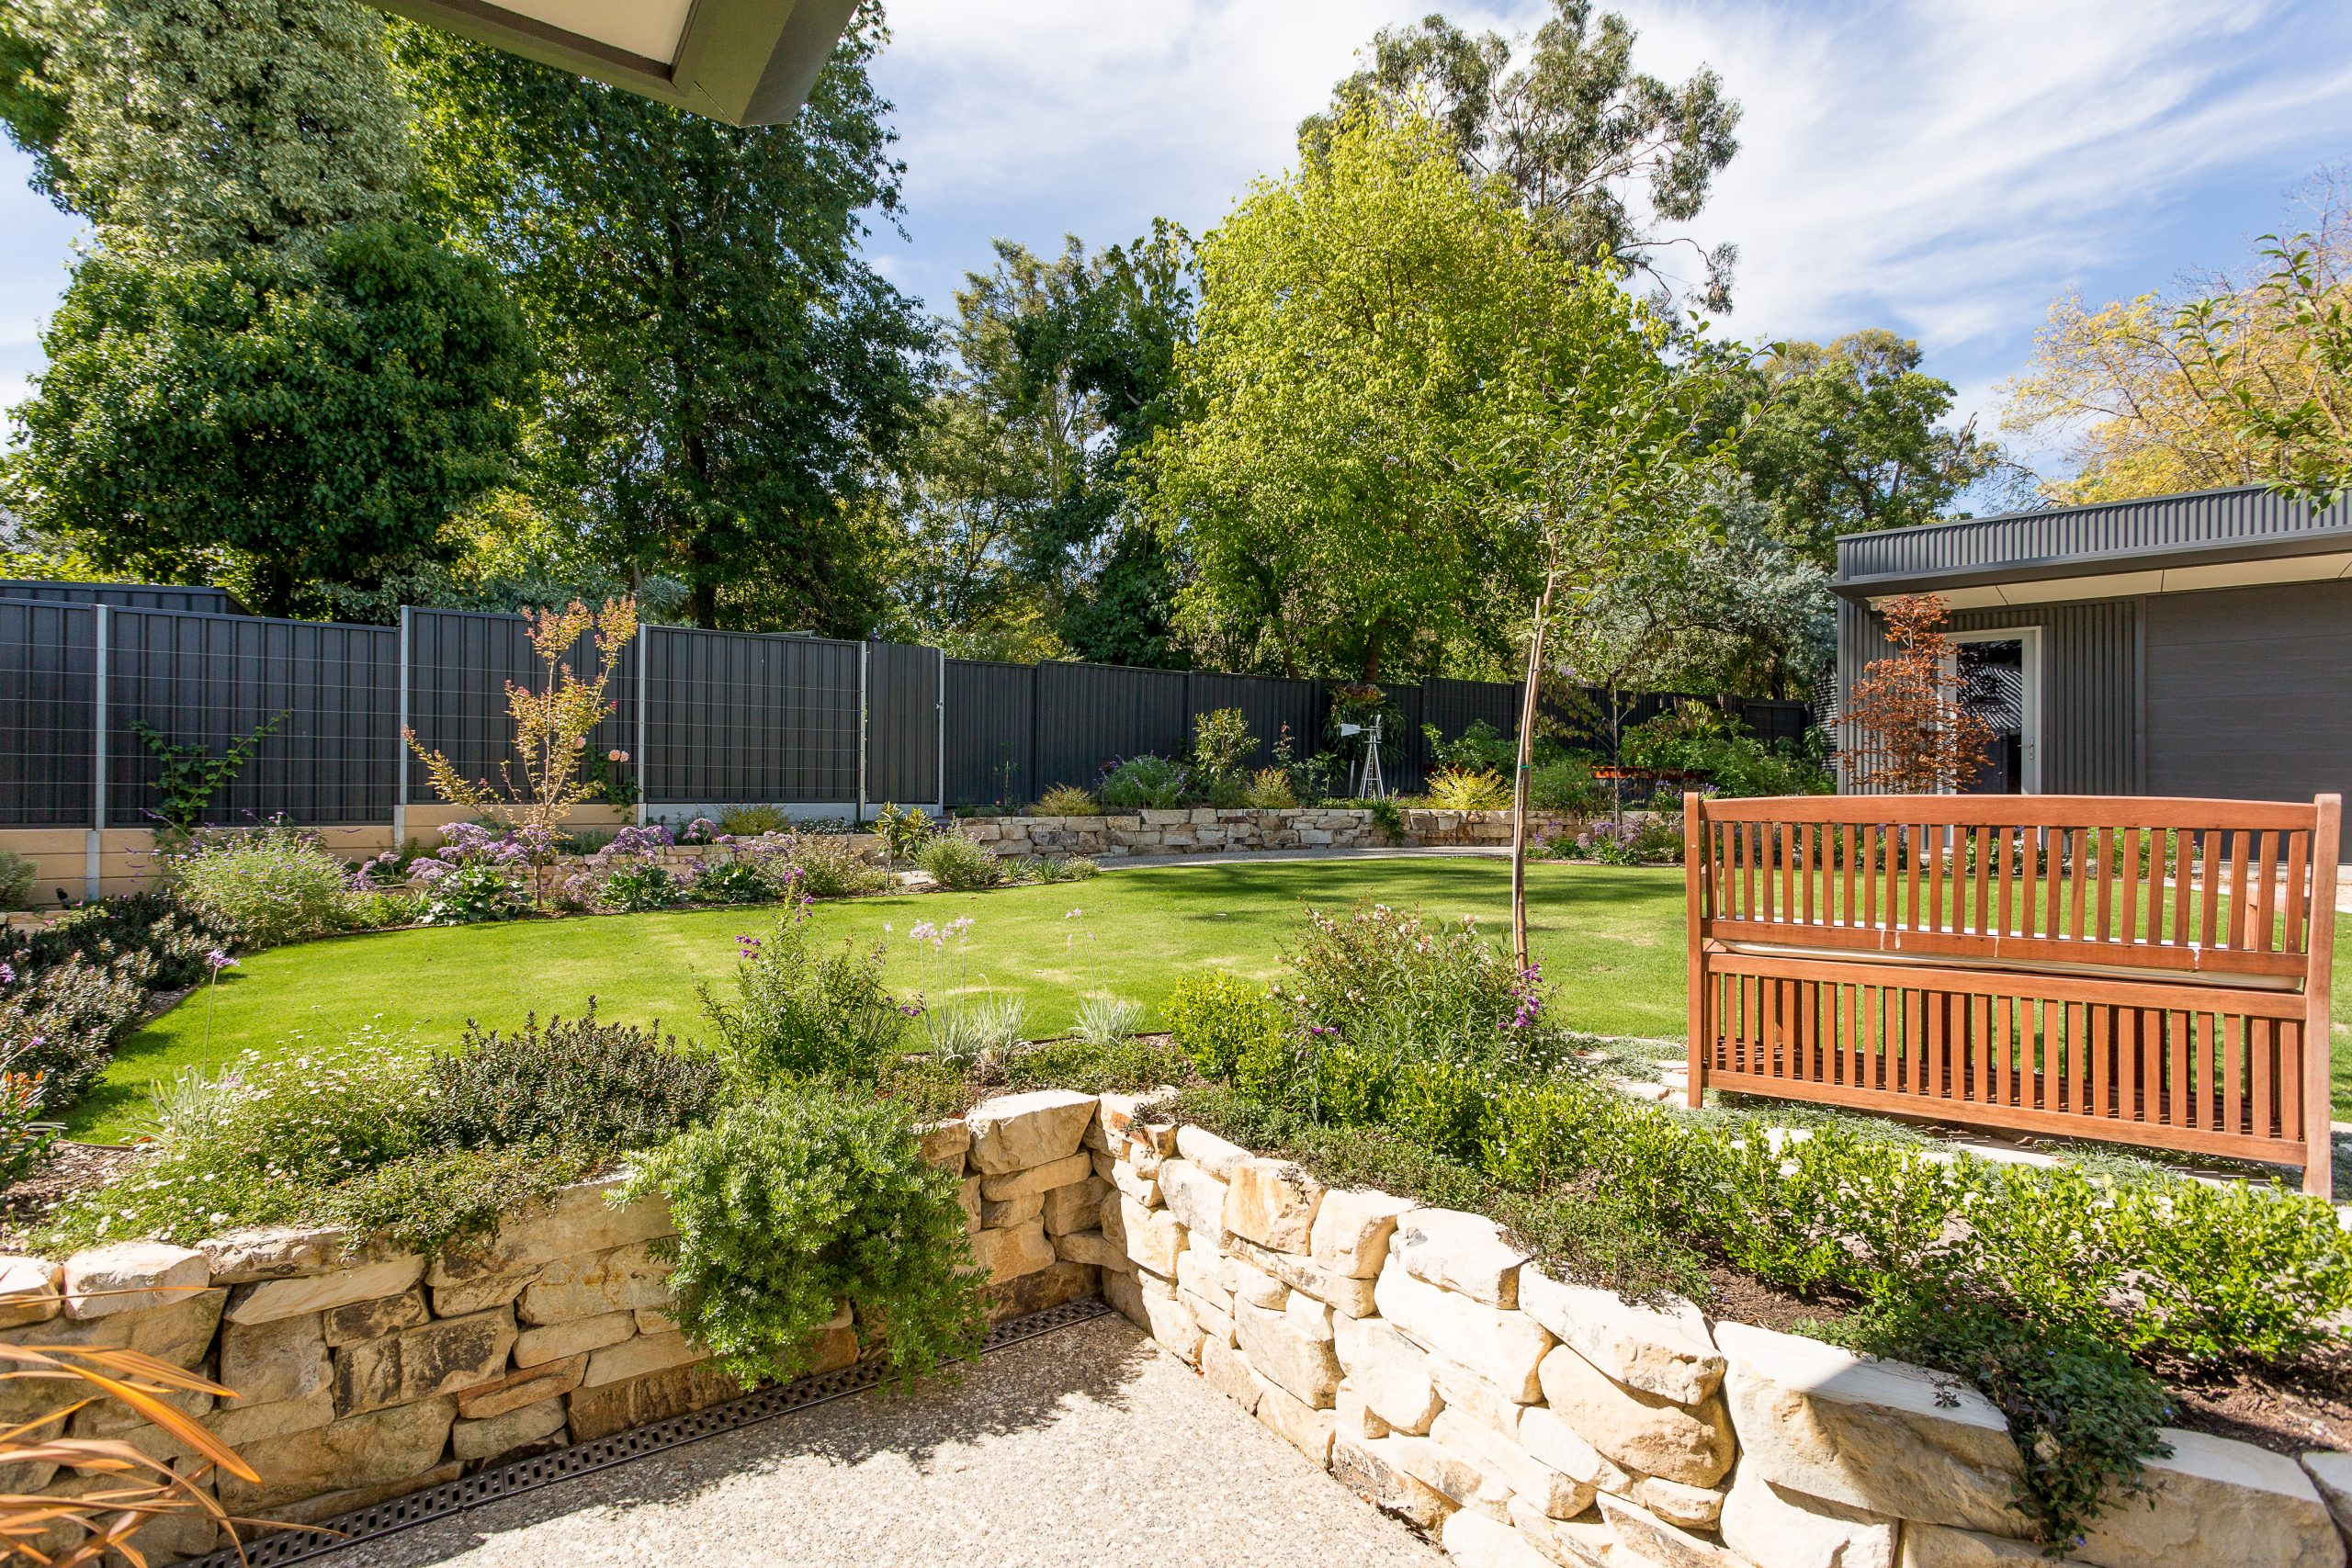 Friendly Neighbour Fence, Fencing Contractors, Retaining Wall, Block Wall, Raised Garden Bed, Concrete Path, Edging, Landscapers, Landscaping Design, Garden Designs, Turf, Irrigation, Blackwood